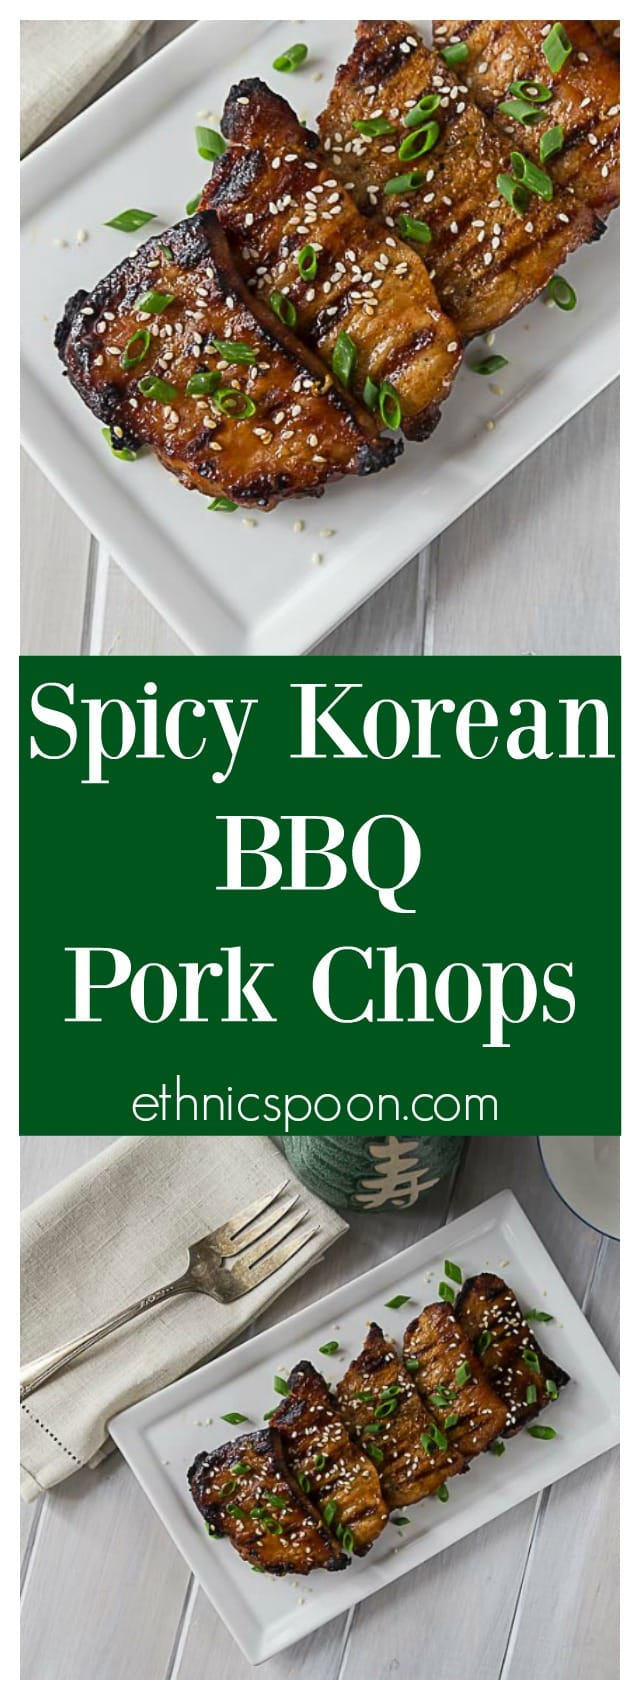 Tender and delicious grilled boneless pork chops in a spicy Korean BBQ sauce. A quick and easy weeknight meal! #GrillPorkLikeASteak #ad | ethnicspoon.com